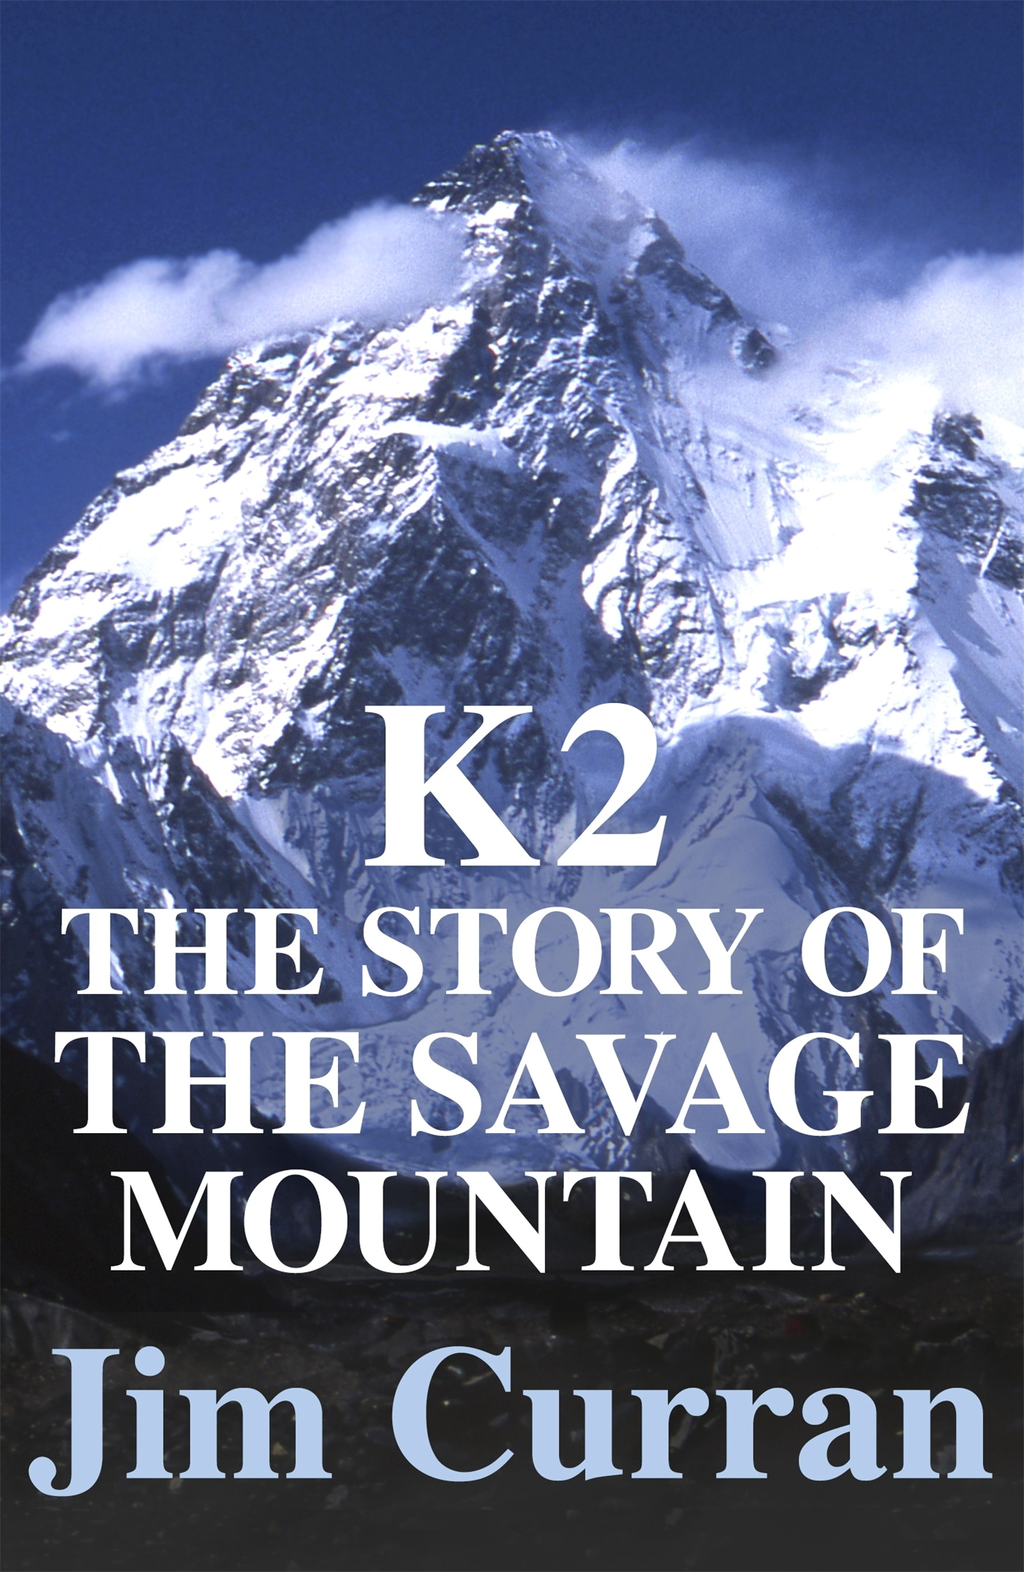 K2: The Story Of The Savage Mountain